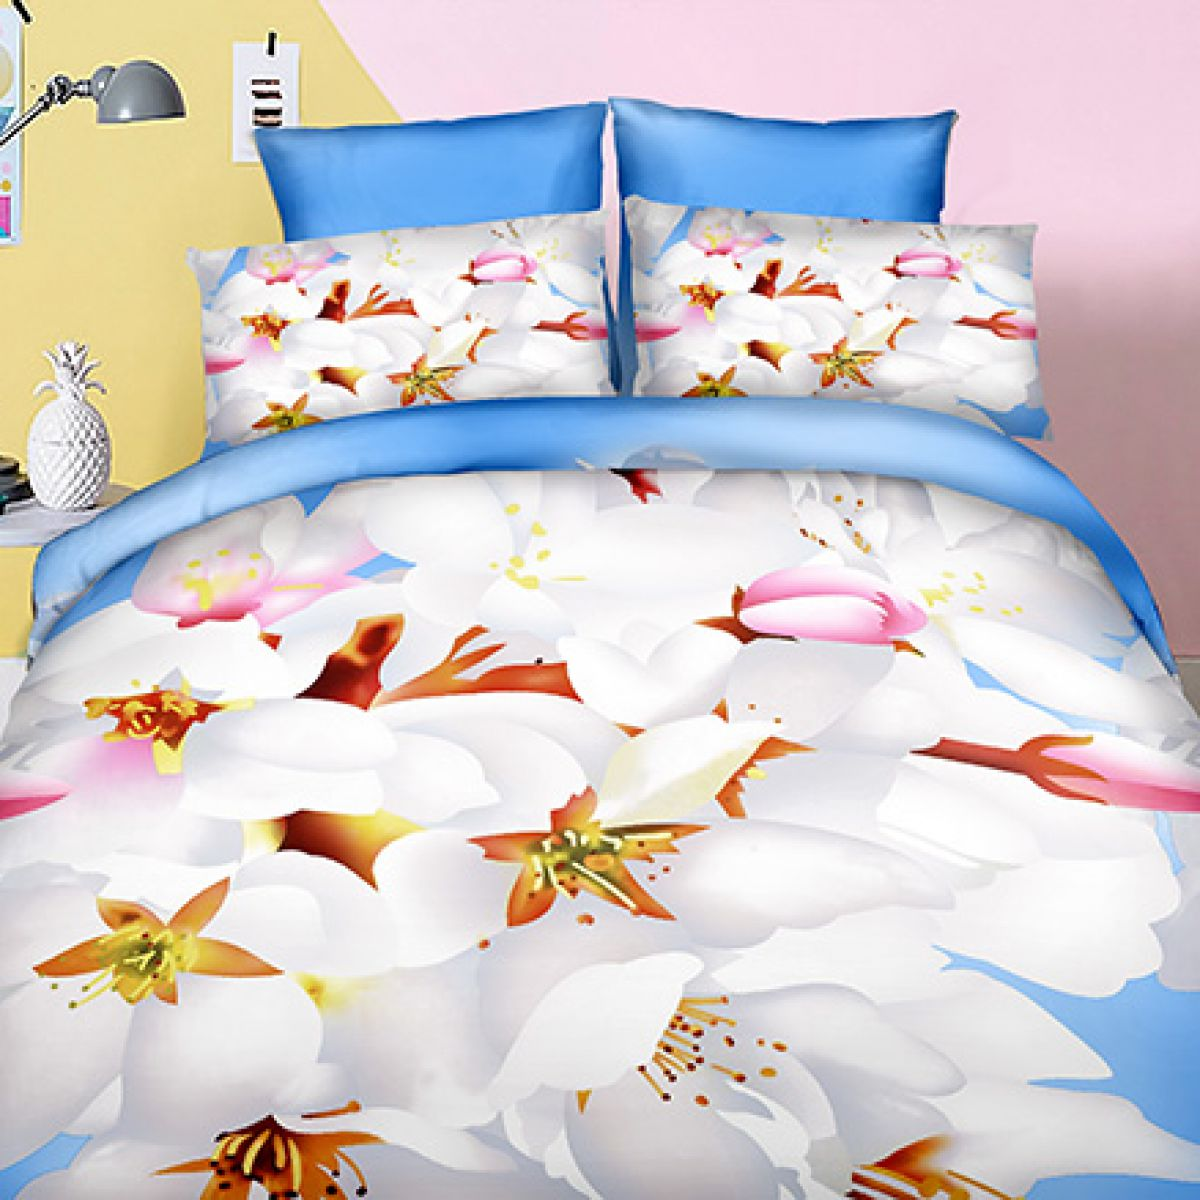 3D Beddings - Antonio - AML-90 - 160x200 cm - 4 pcs